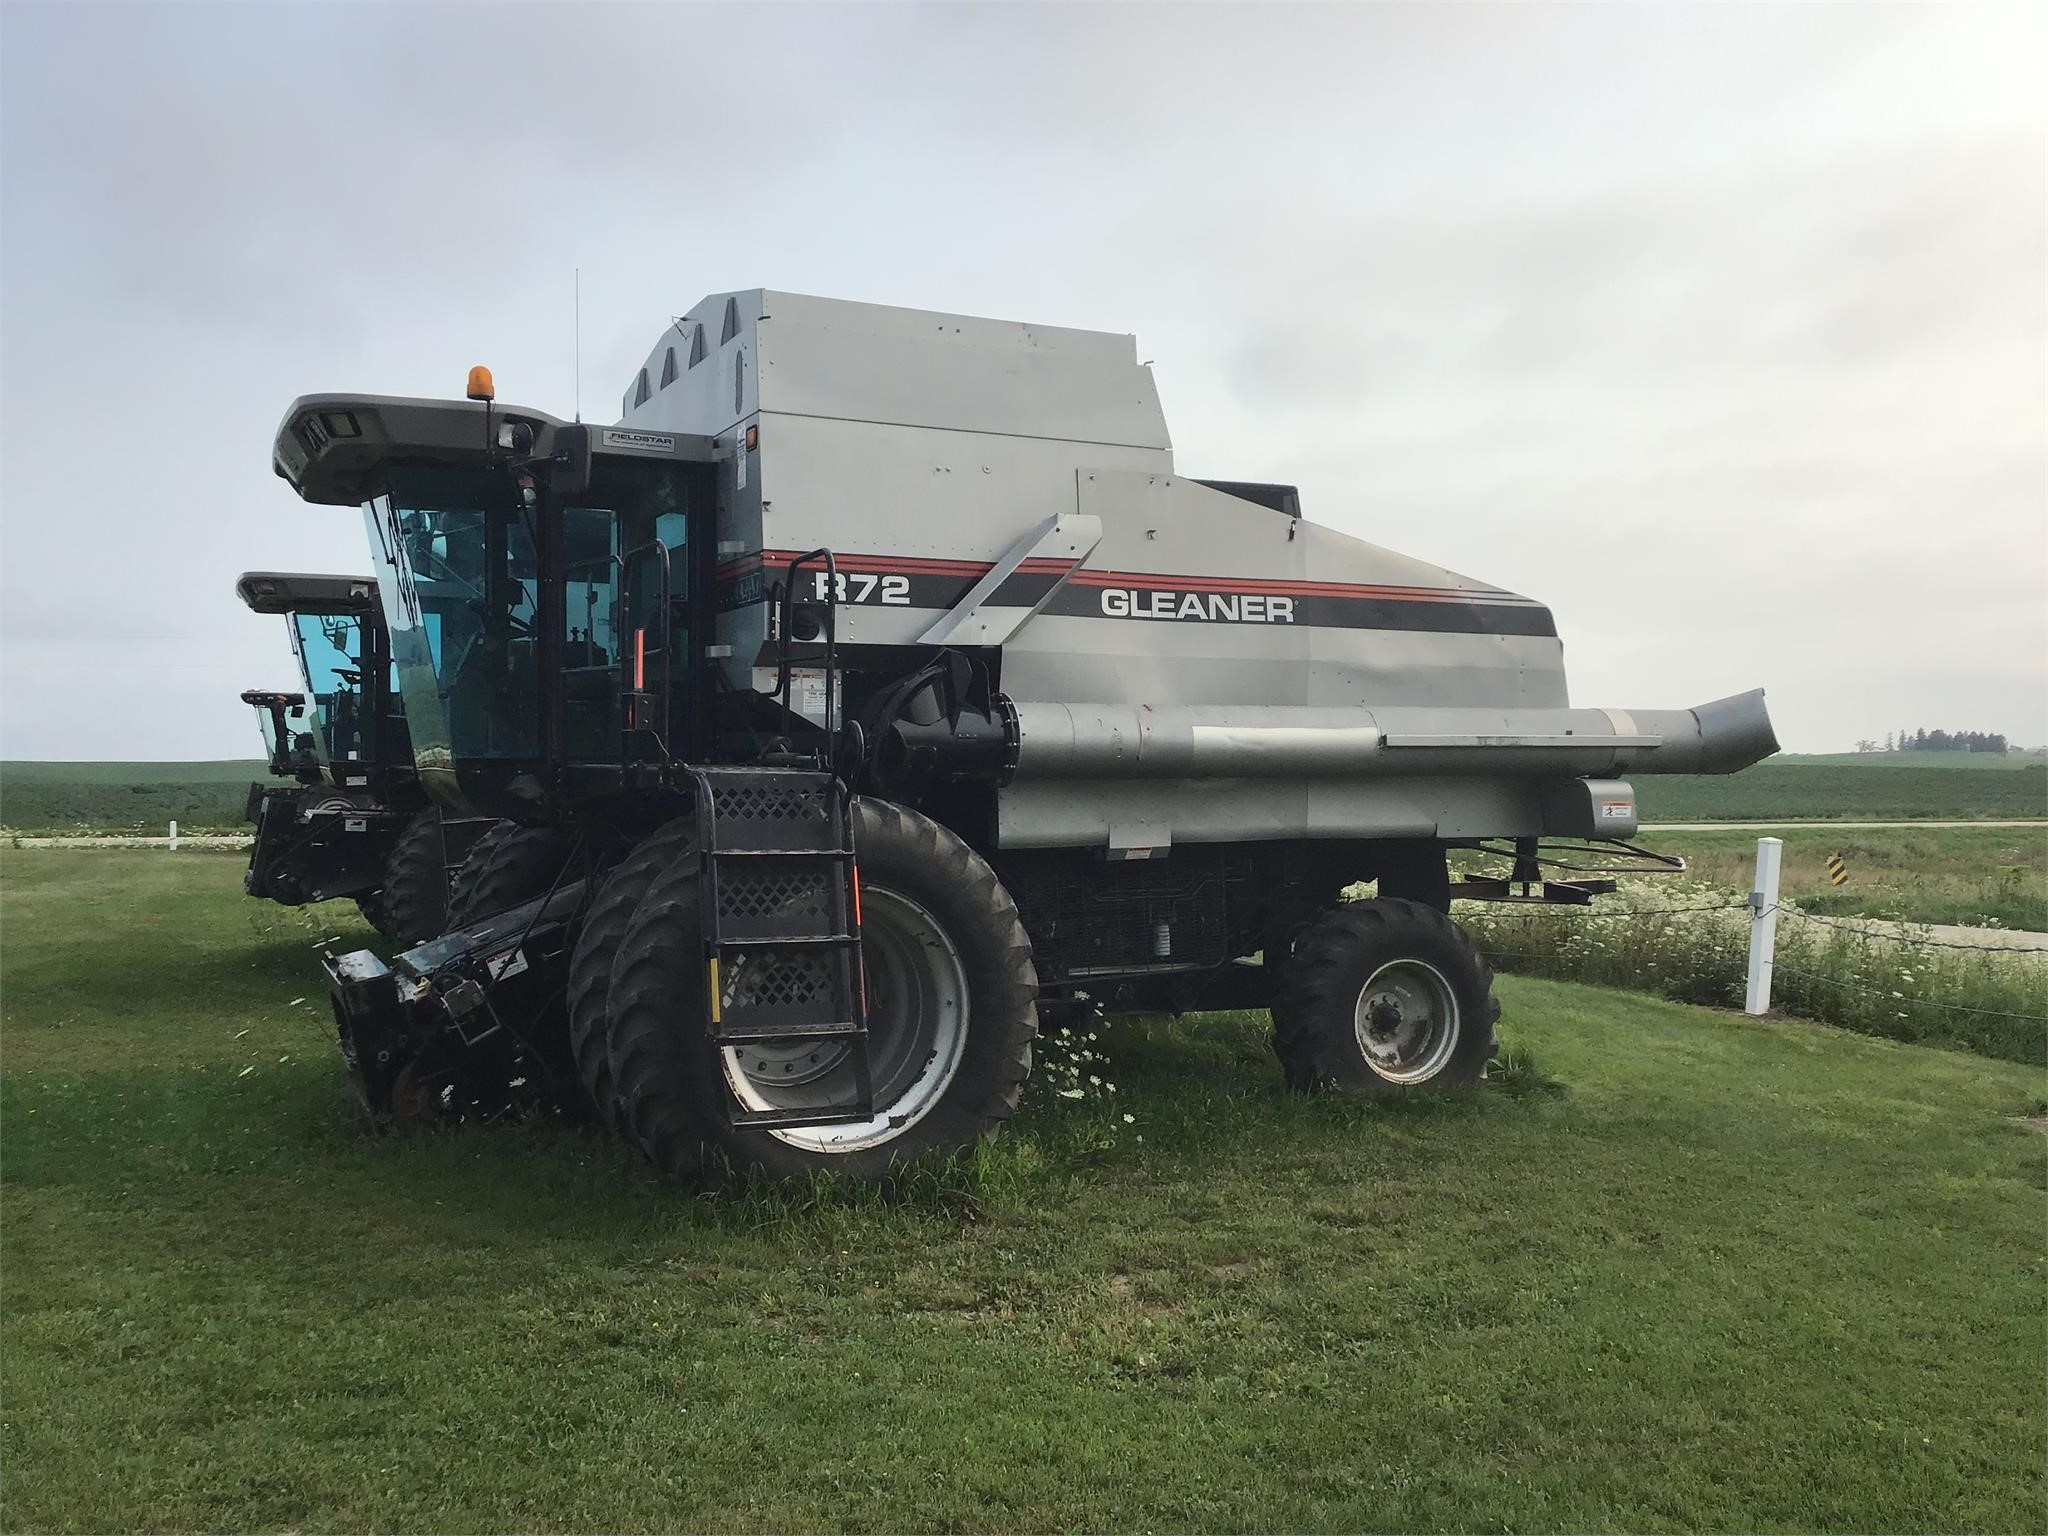 Used, 2002, GLEANER, R72, Harvesters - Combines